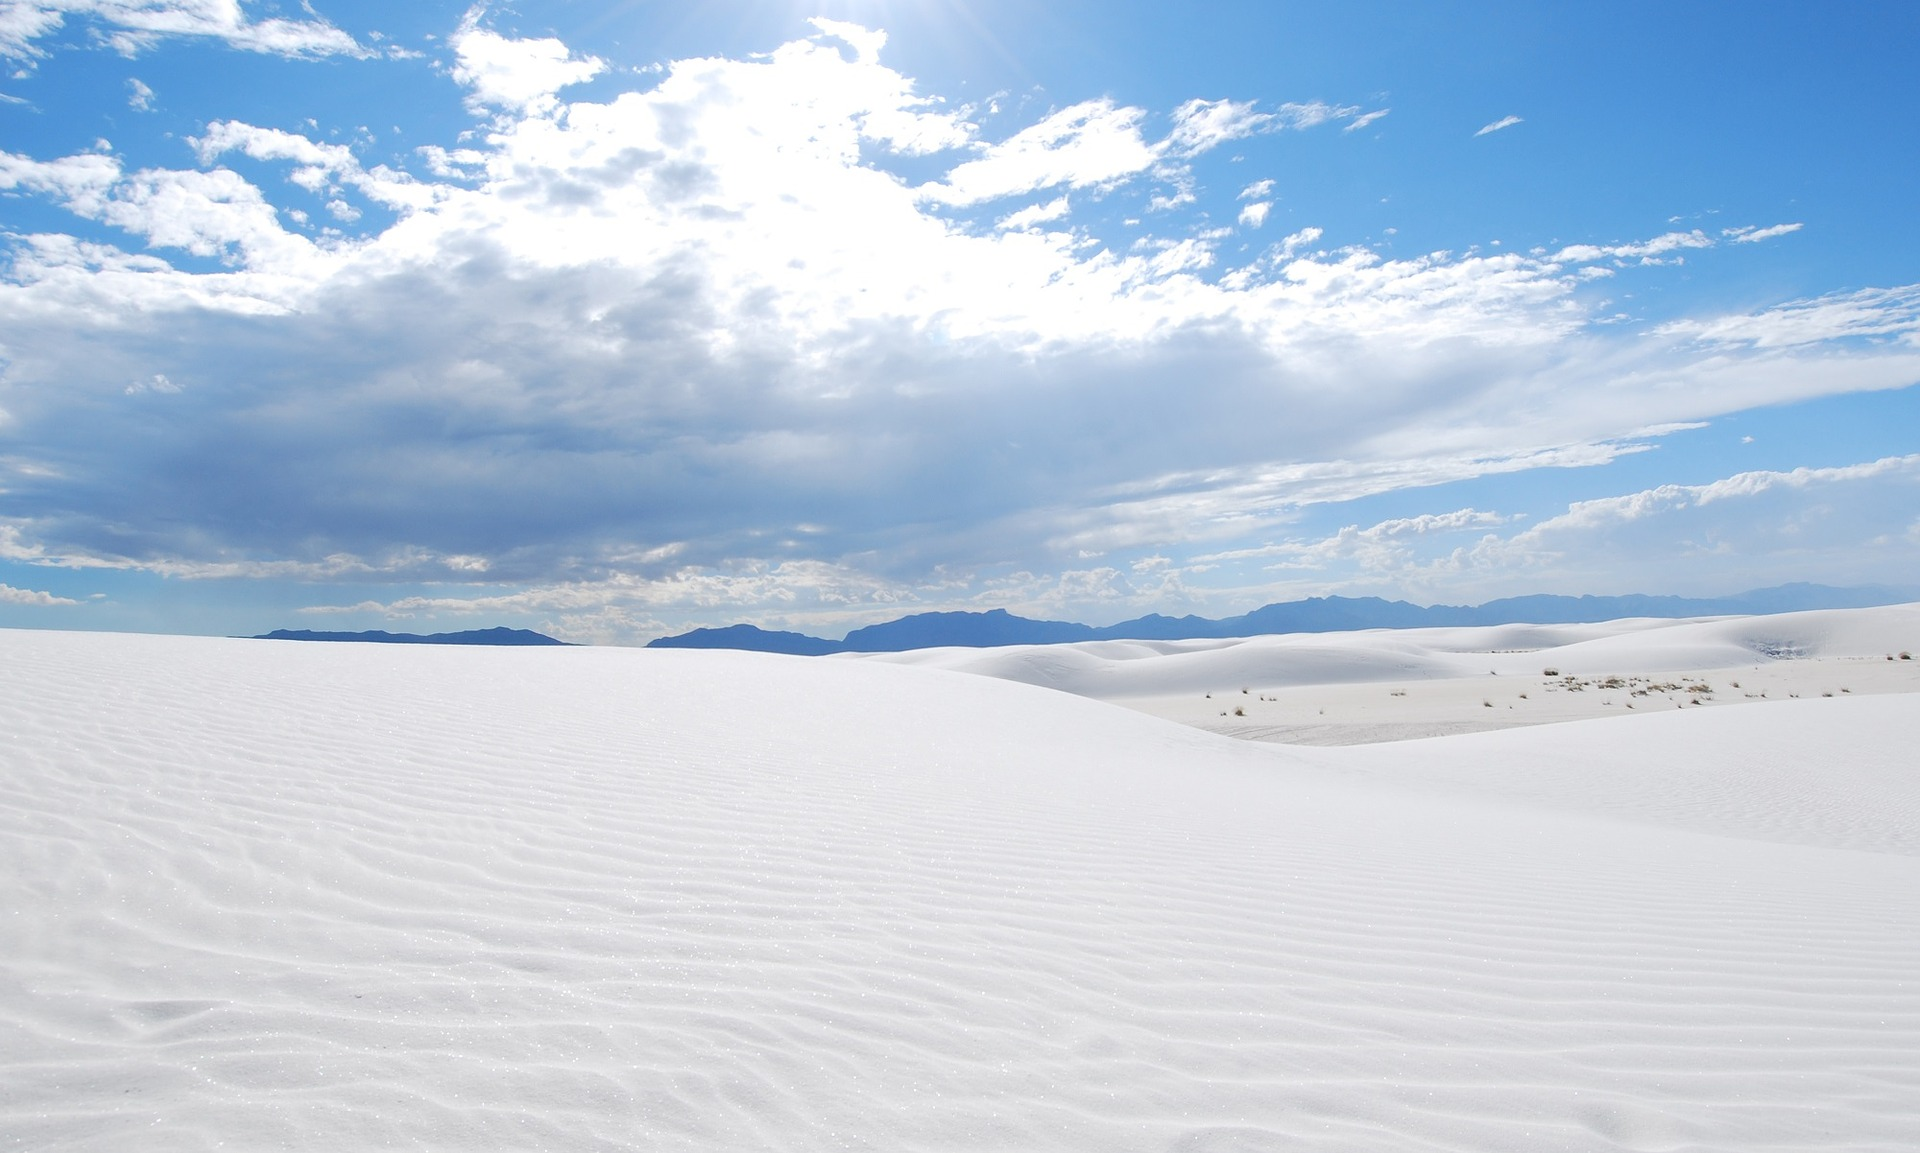 White, wind-blown desert sands with mountains on the horizon.